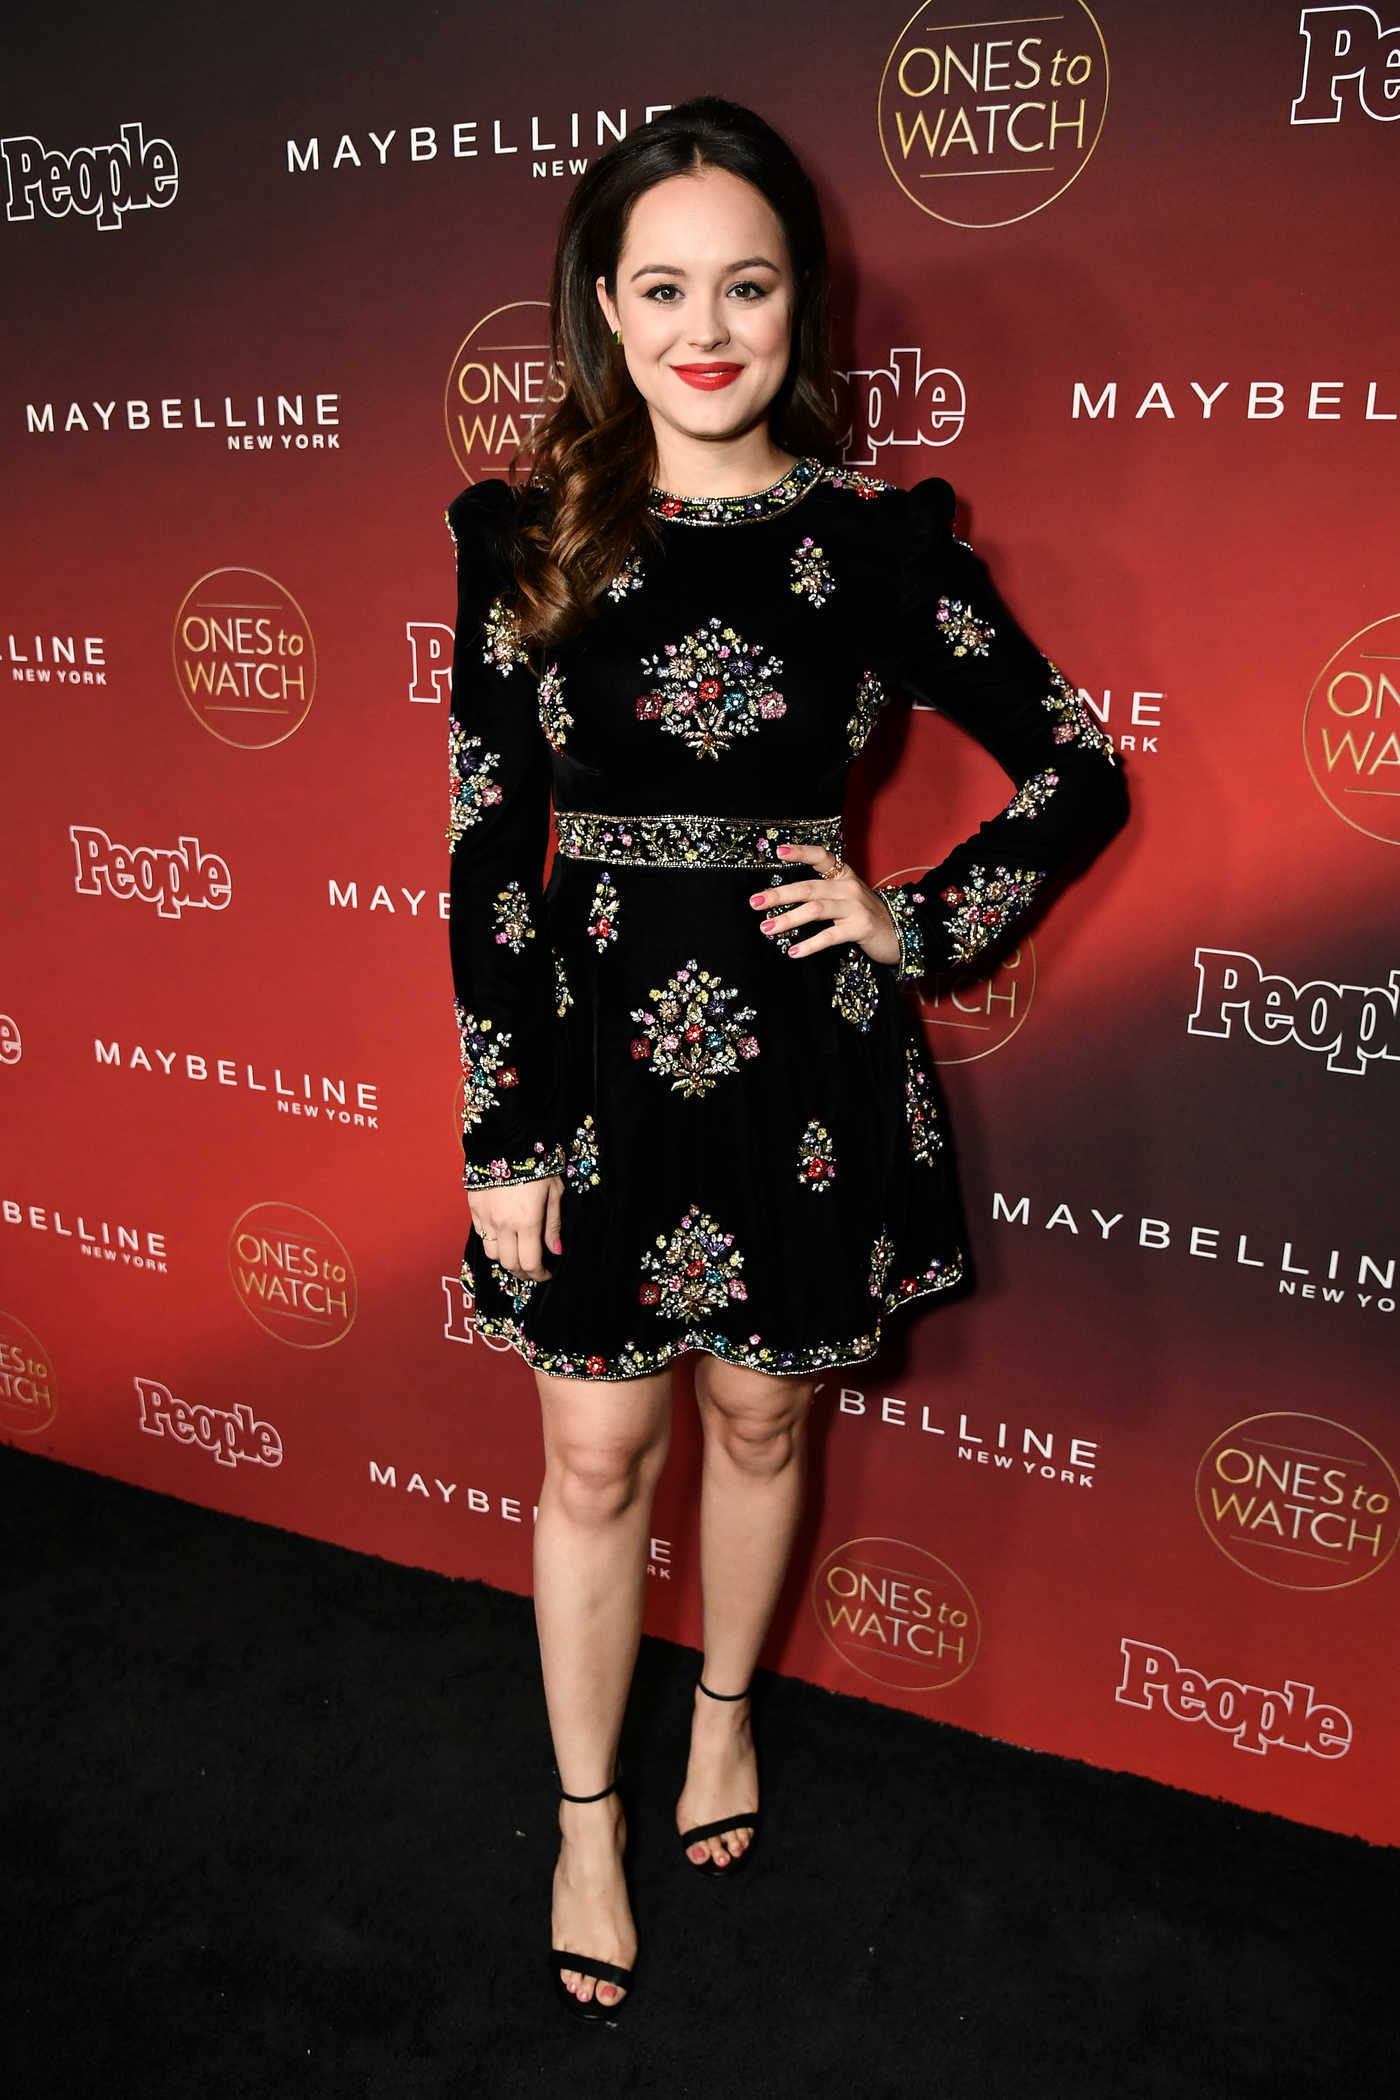 Hayley Orrantia at the PEOPLE's Ones to Watch Party in Los Angeles 10/04/2017